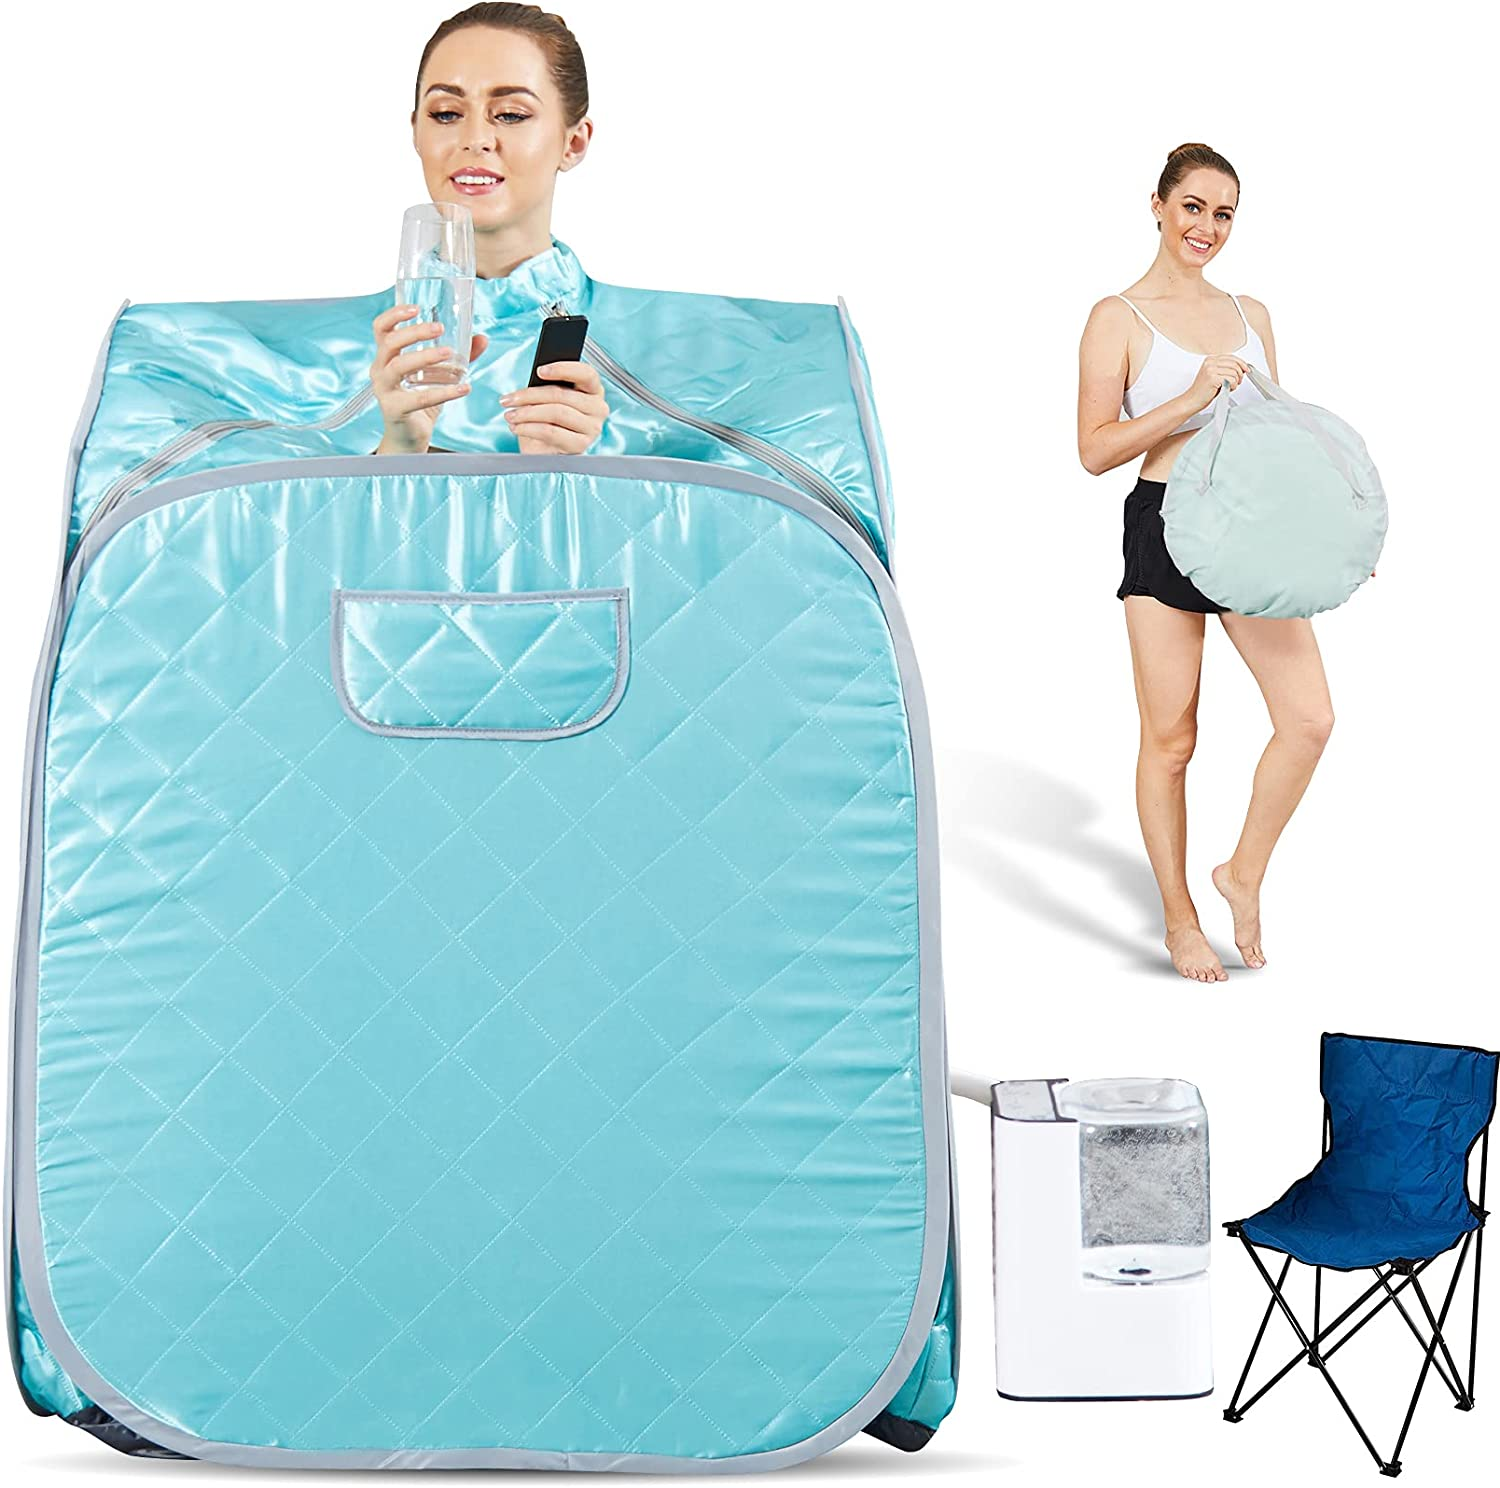 Hicient Limited Special Price Steam Sauna Individual Home Spa-Indoor Portable Se shopping